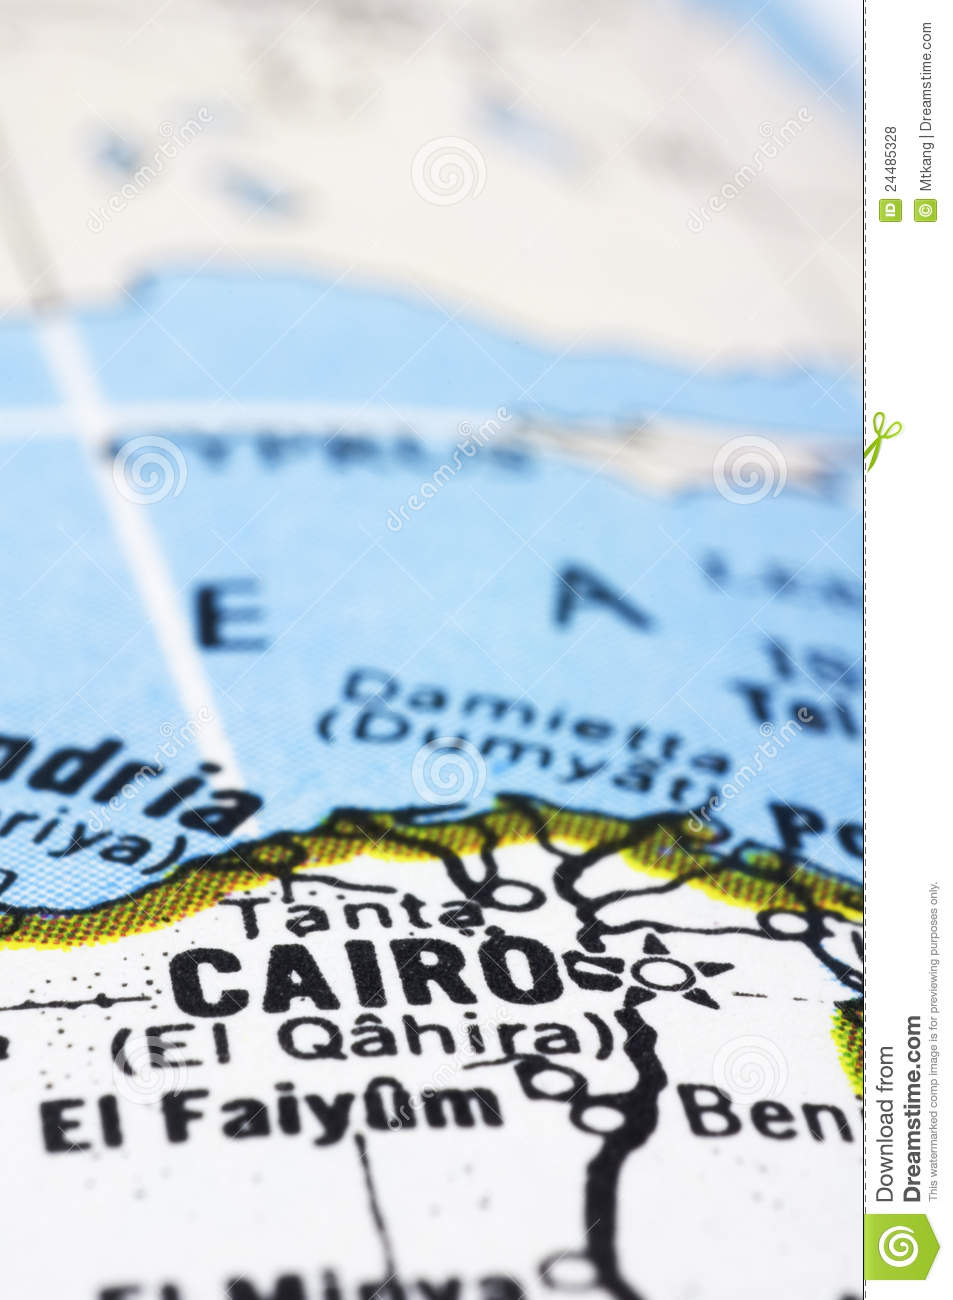 Close Up Of Cairo On Map, Egypt Stock Photo - Image of trip, travel ...